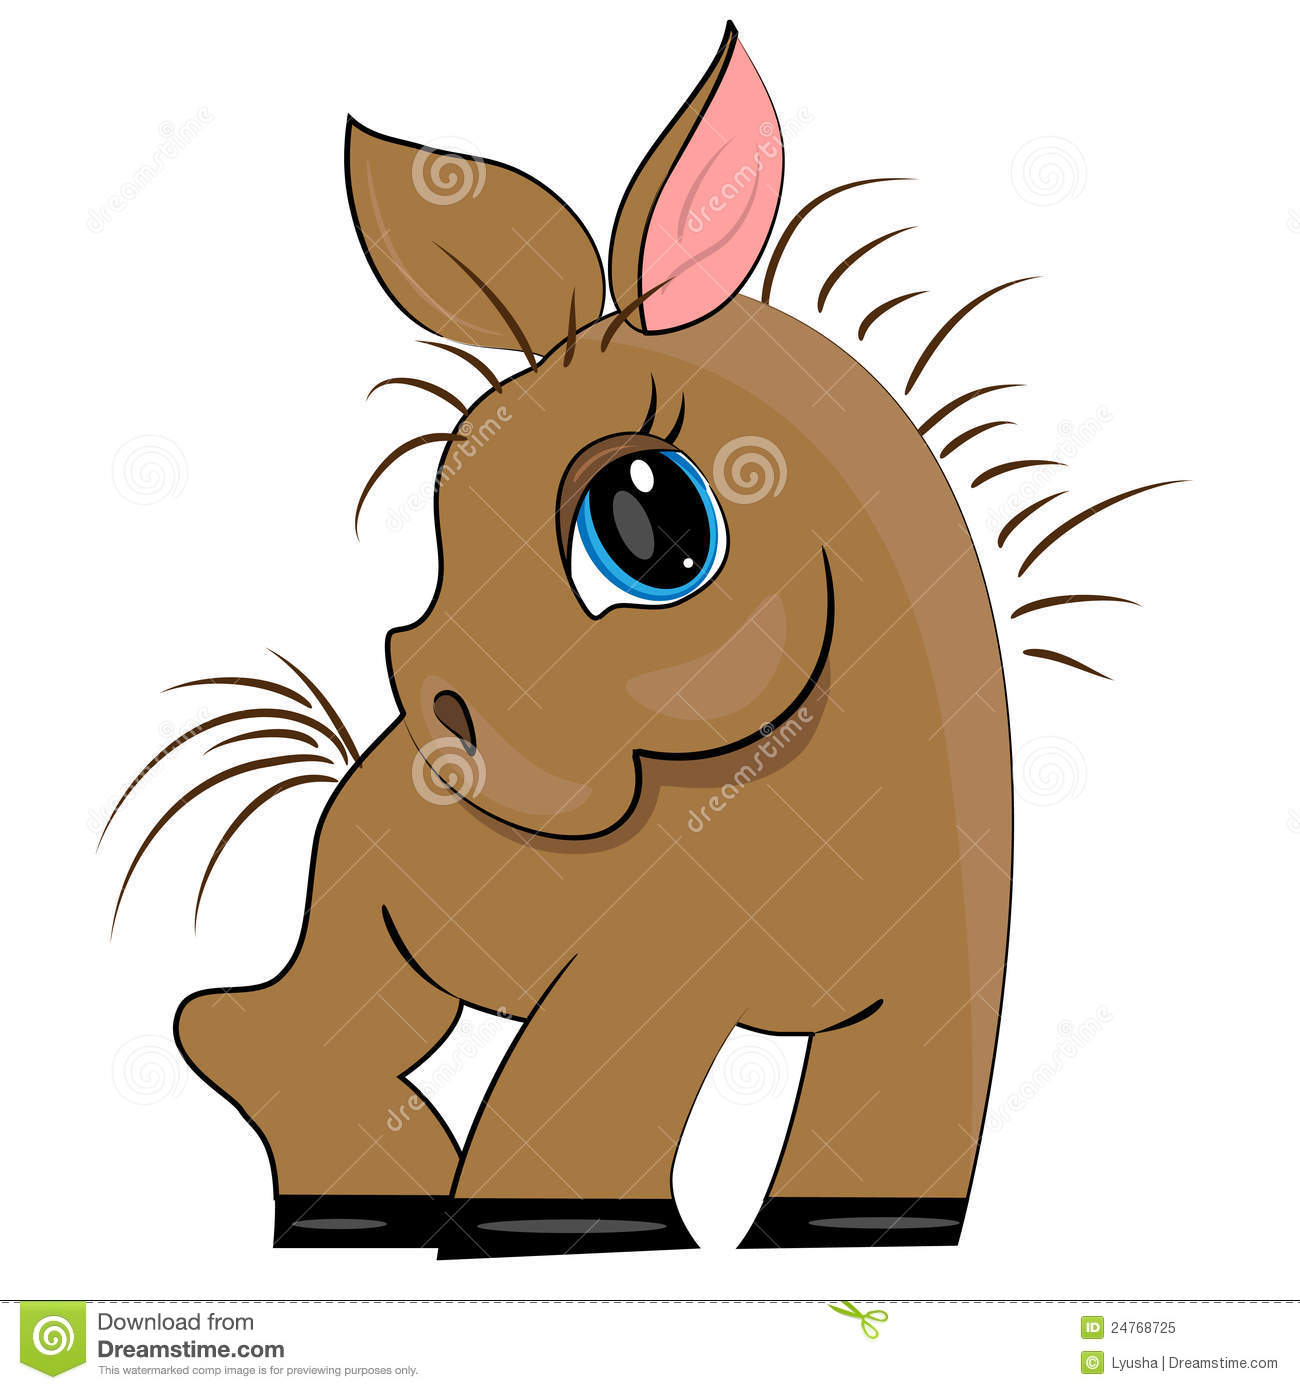 how to draw a cute cartoon baby horse